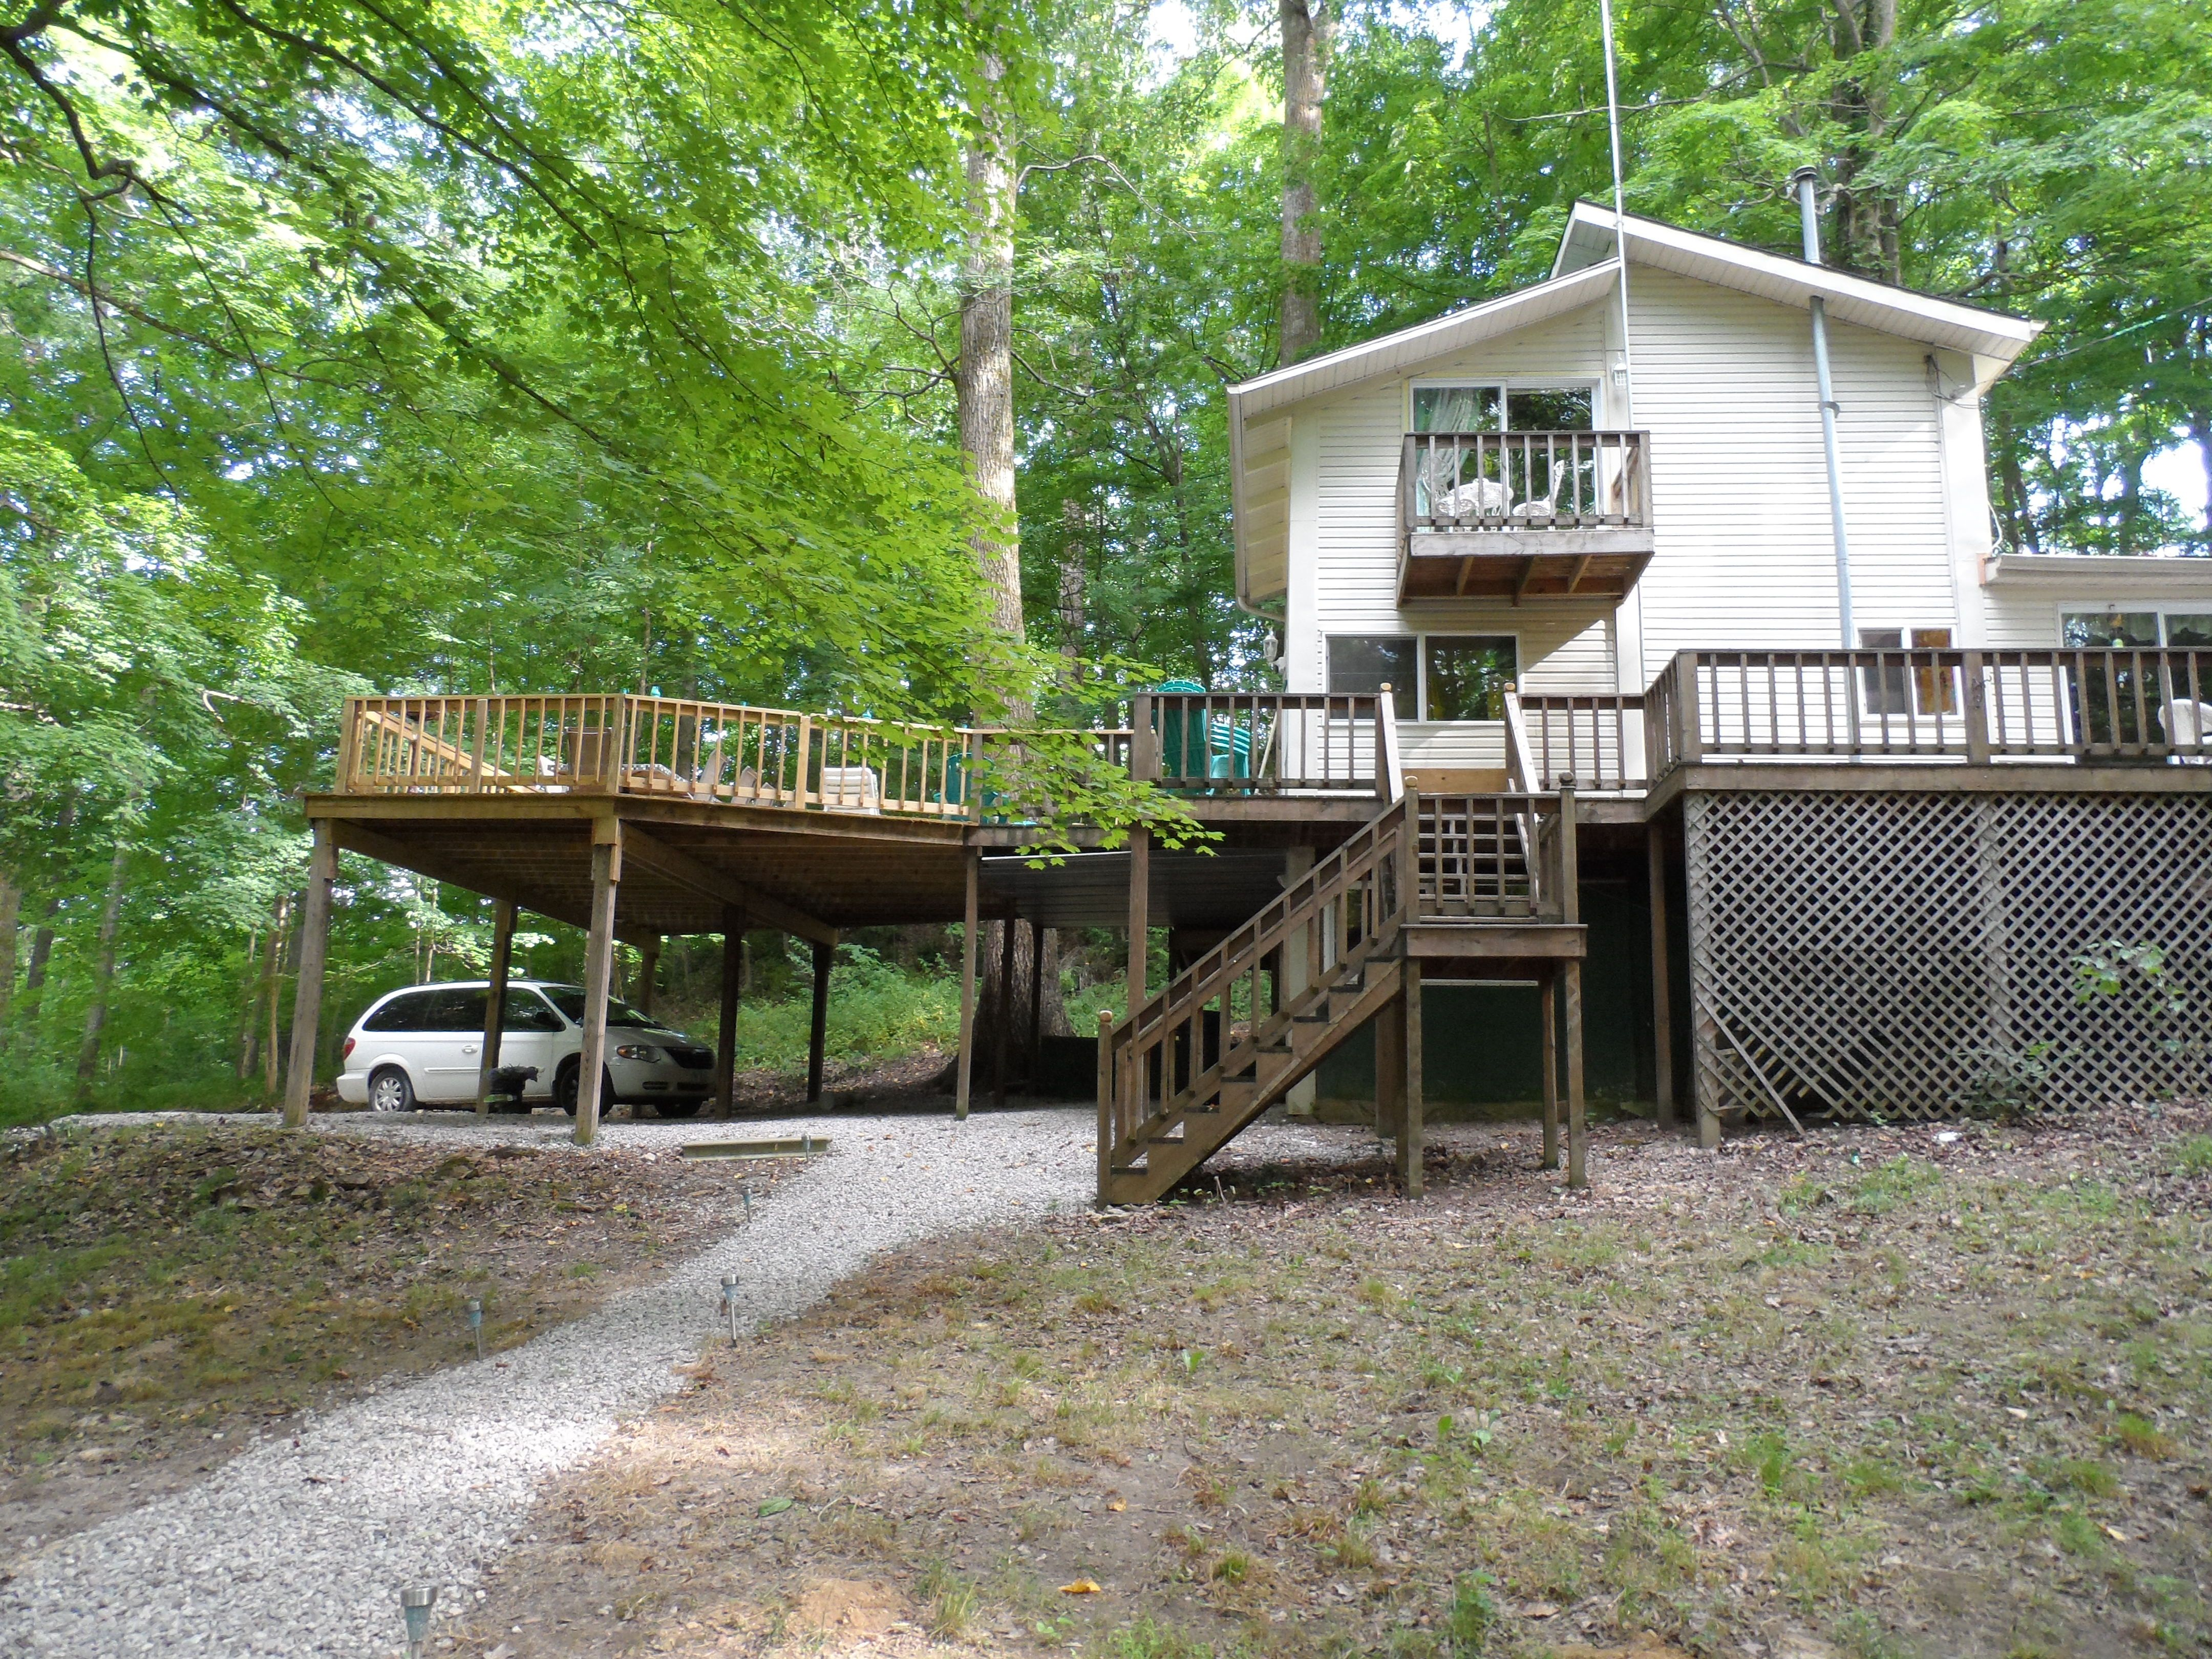 cabins for forest rent cabin homes riverside cr cottages vacation cook in rentals ohio